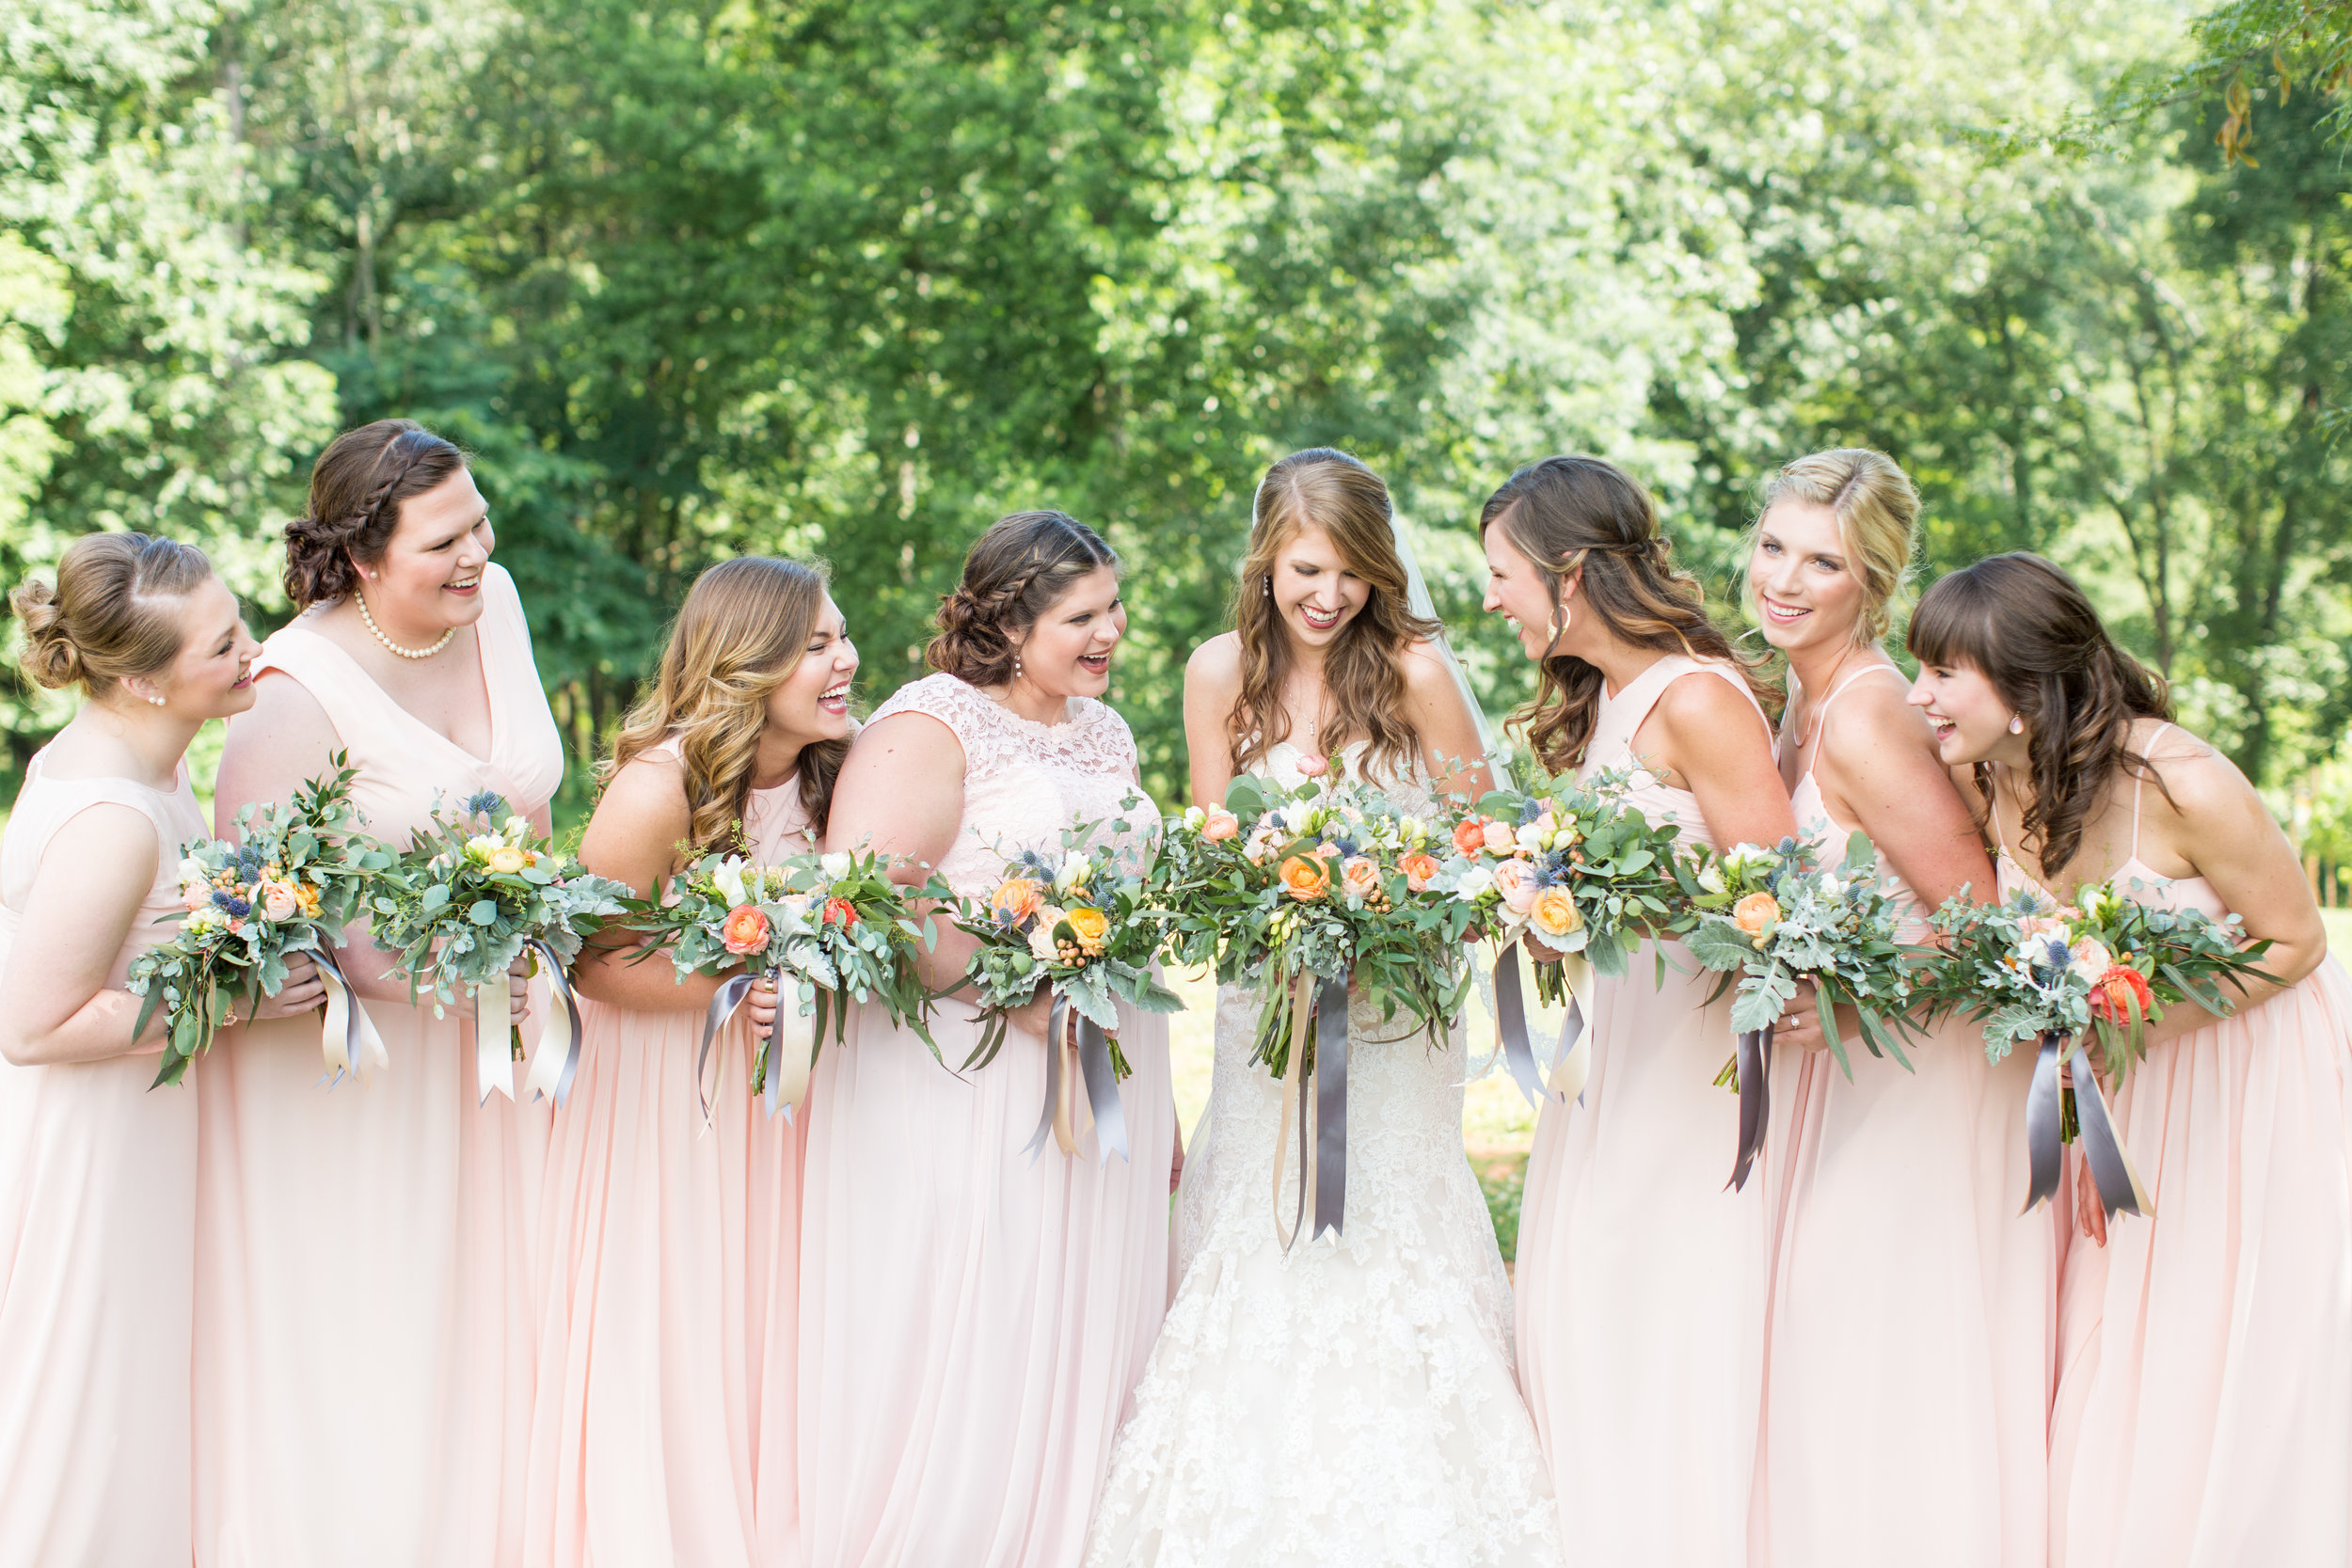 Phillips Wedding- Bridesmaids-10.jpg